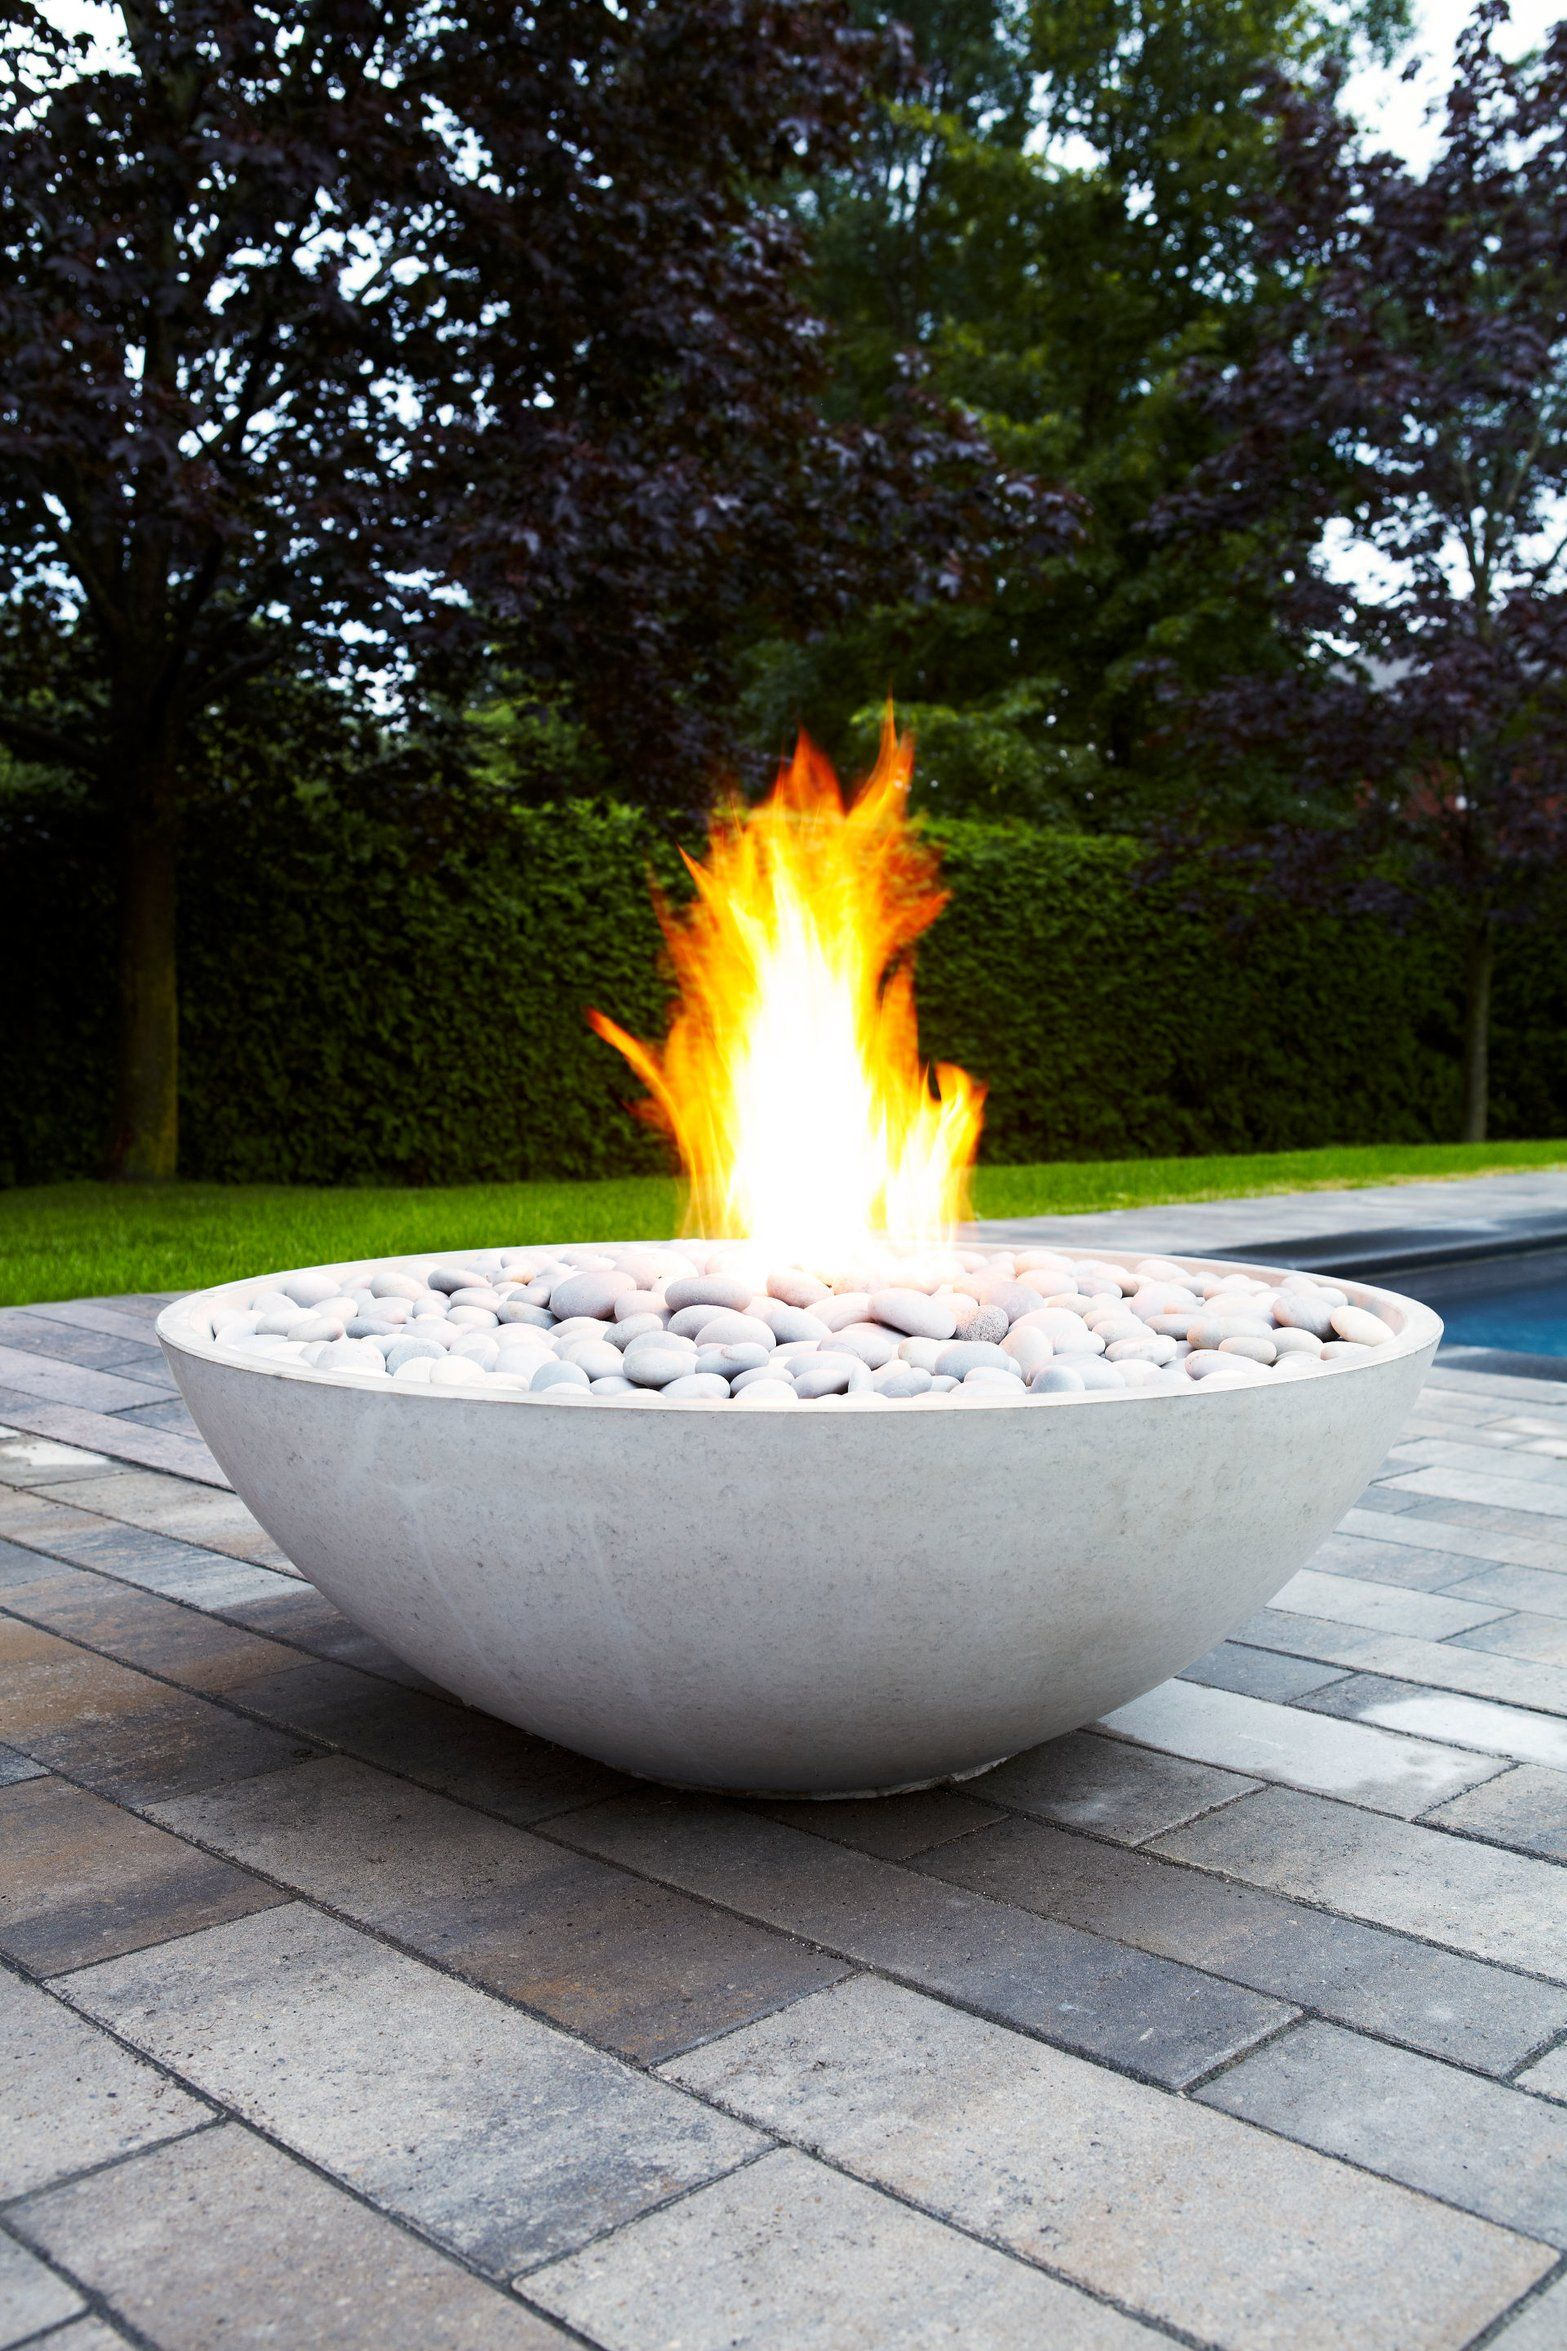 Get The Love Island Villa Look With A Gas Fire Pit 10th June 2019 Latest News Garden Fire Pit Fire Pit Gas Firepit Modern outdoor fire pit electric